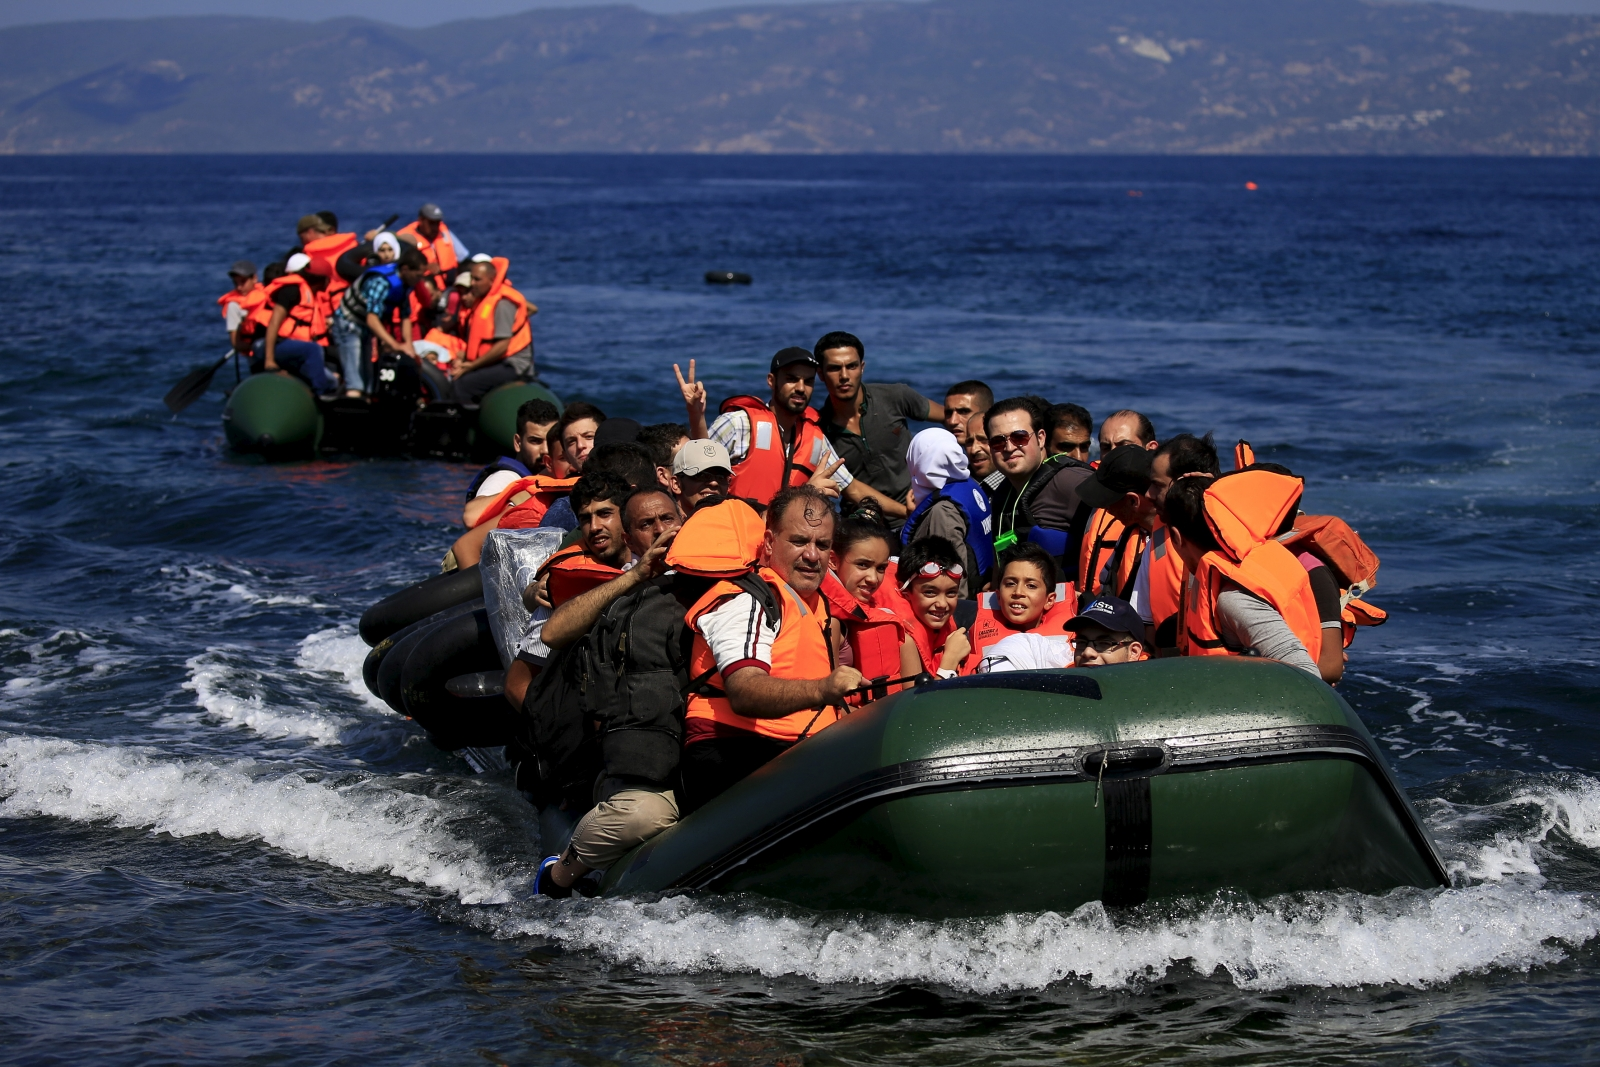 The Mediterranean migrant crisis is reaching a tipping